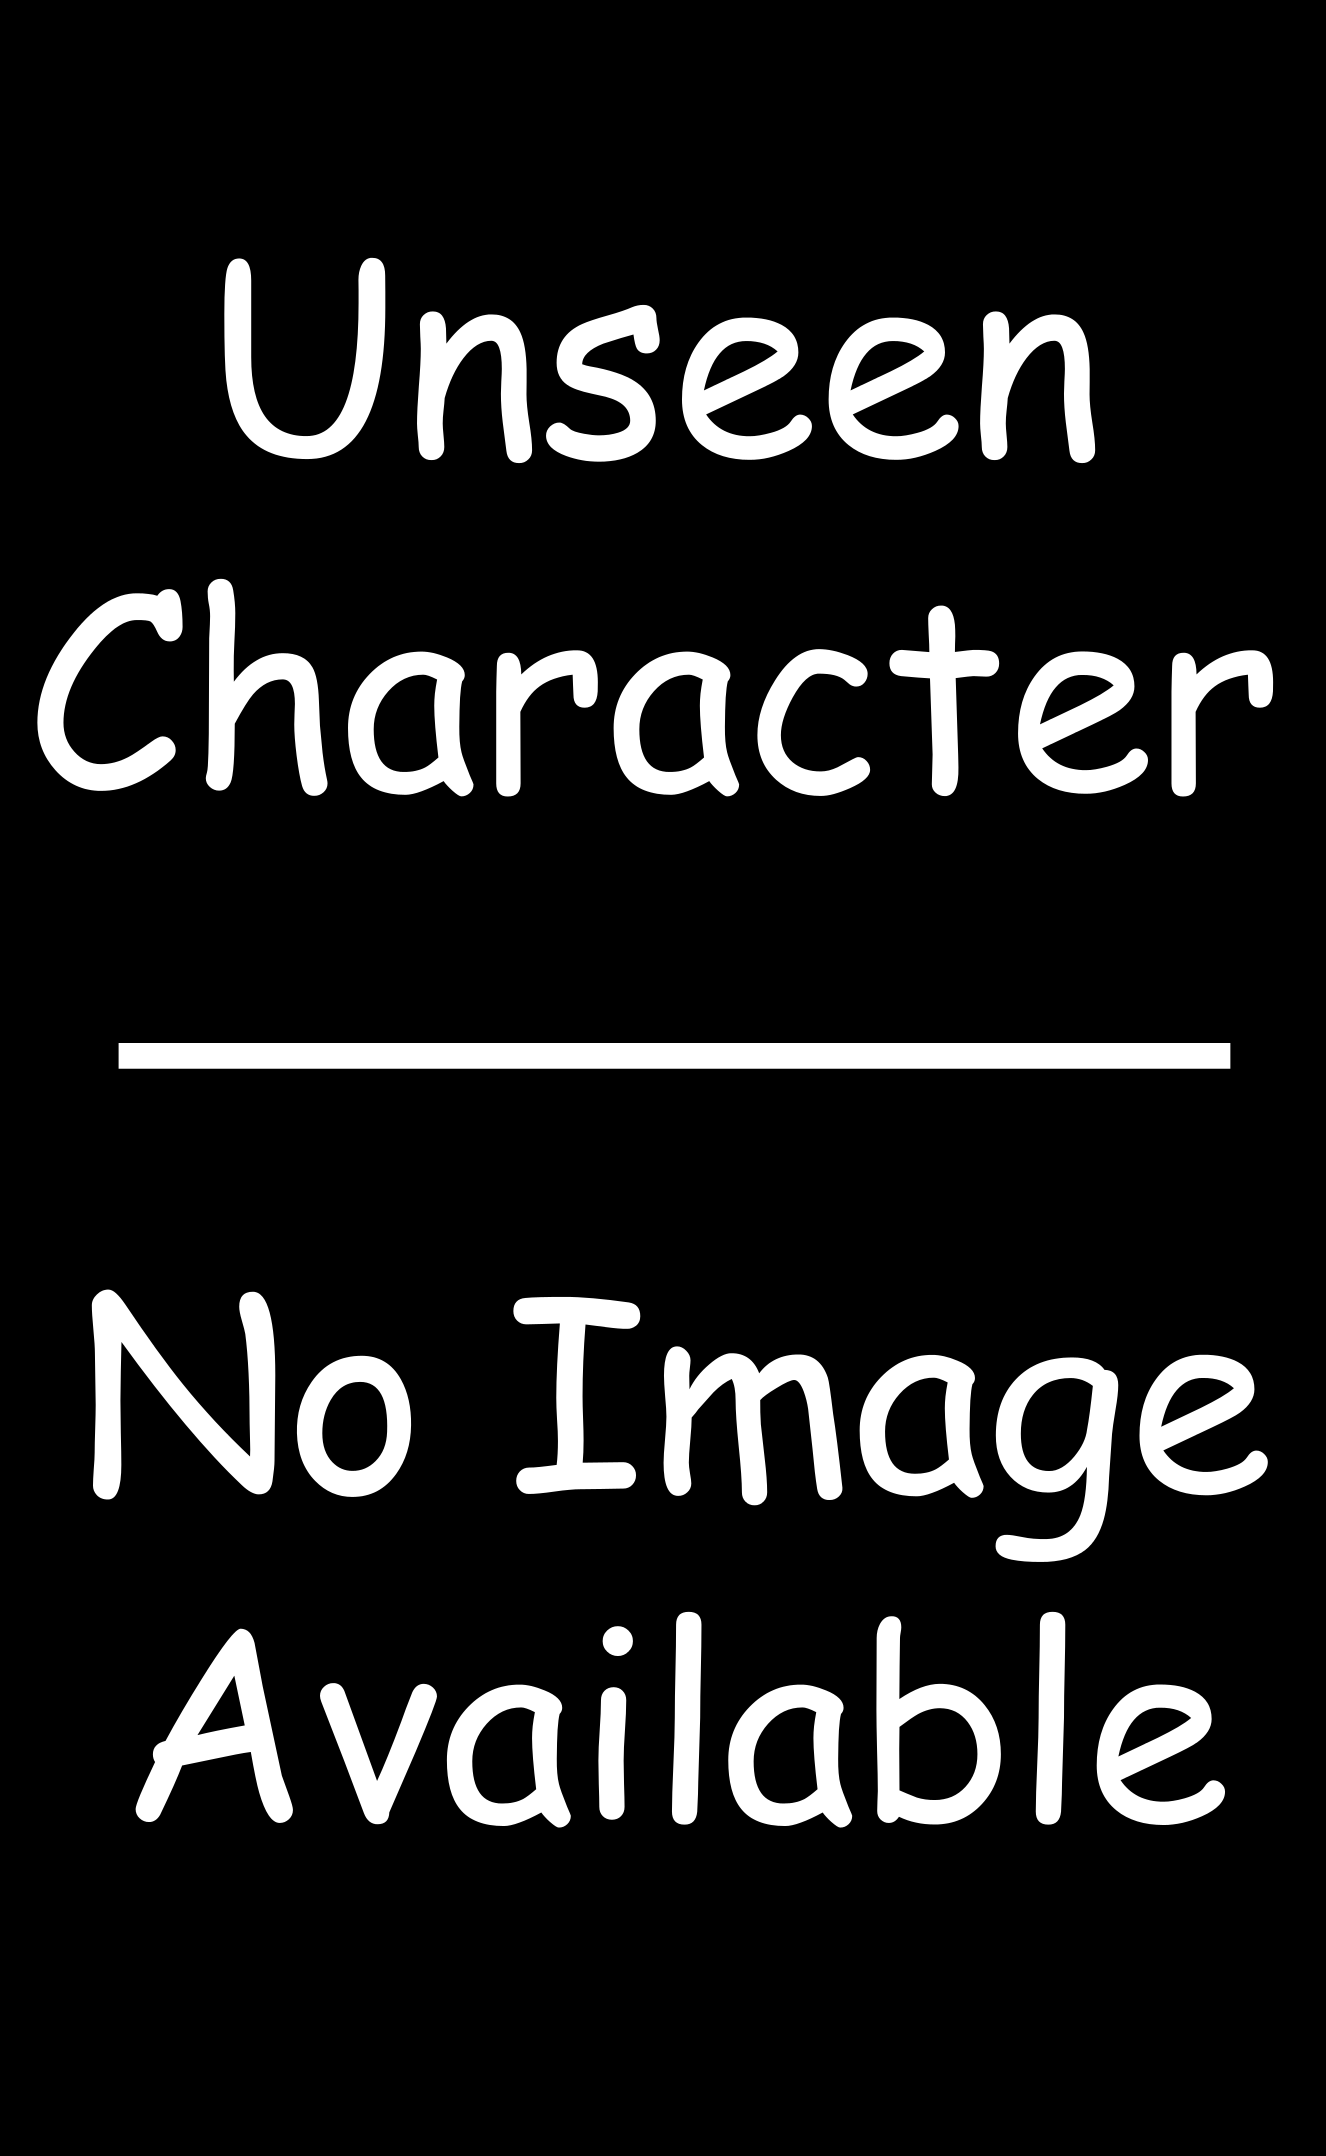 Unseen Character No Image Available